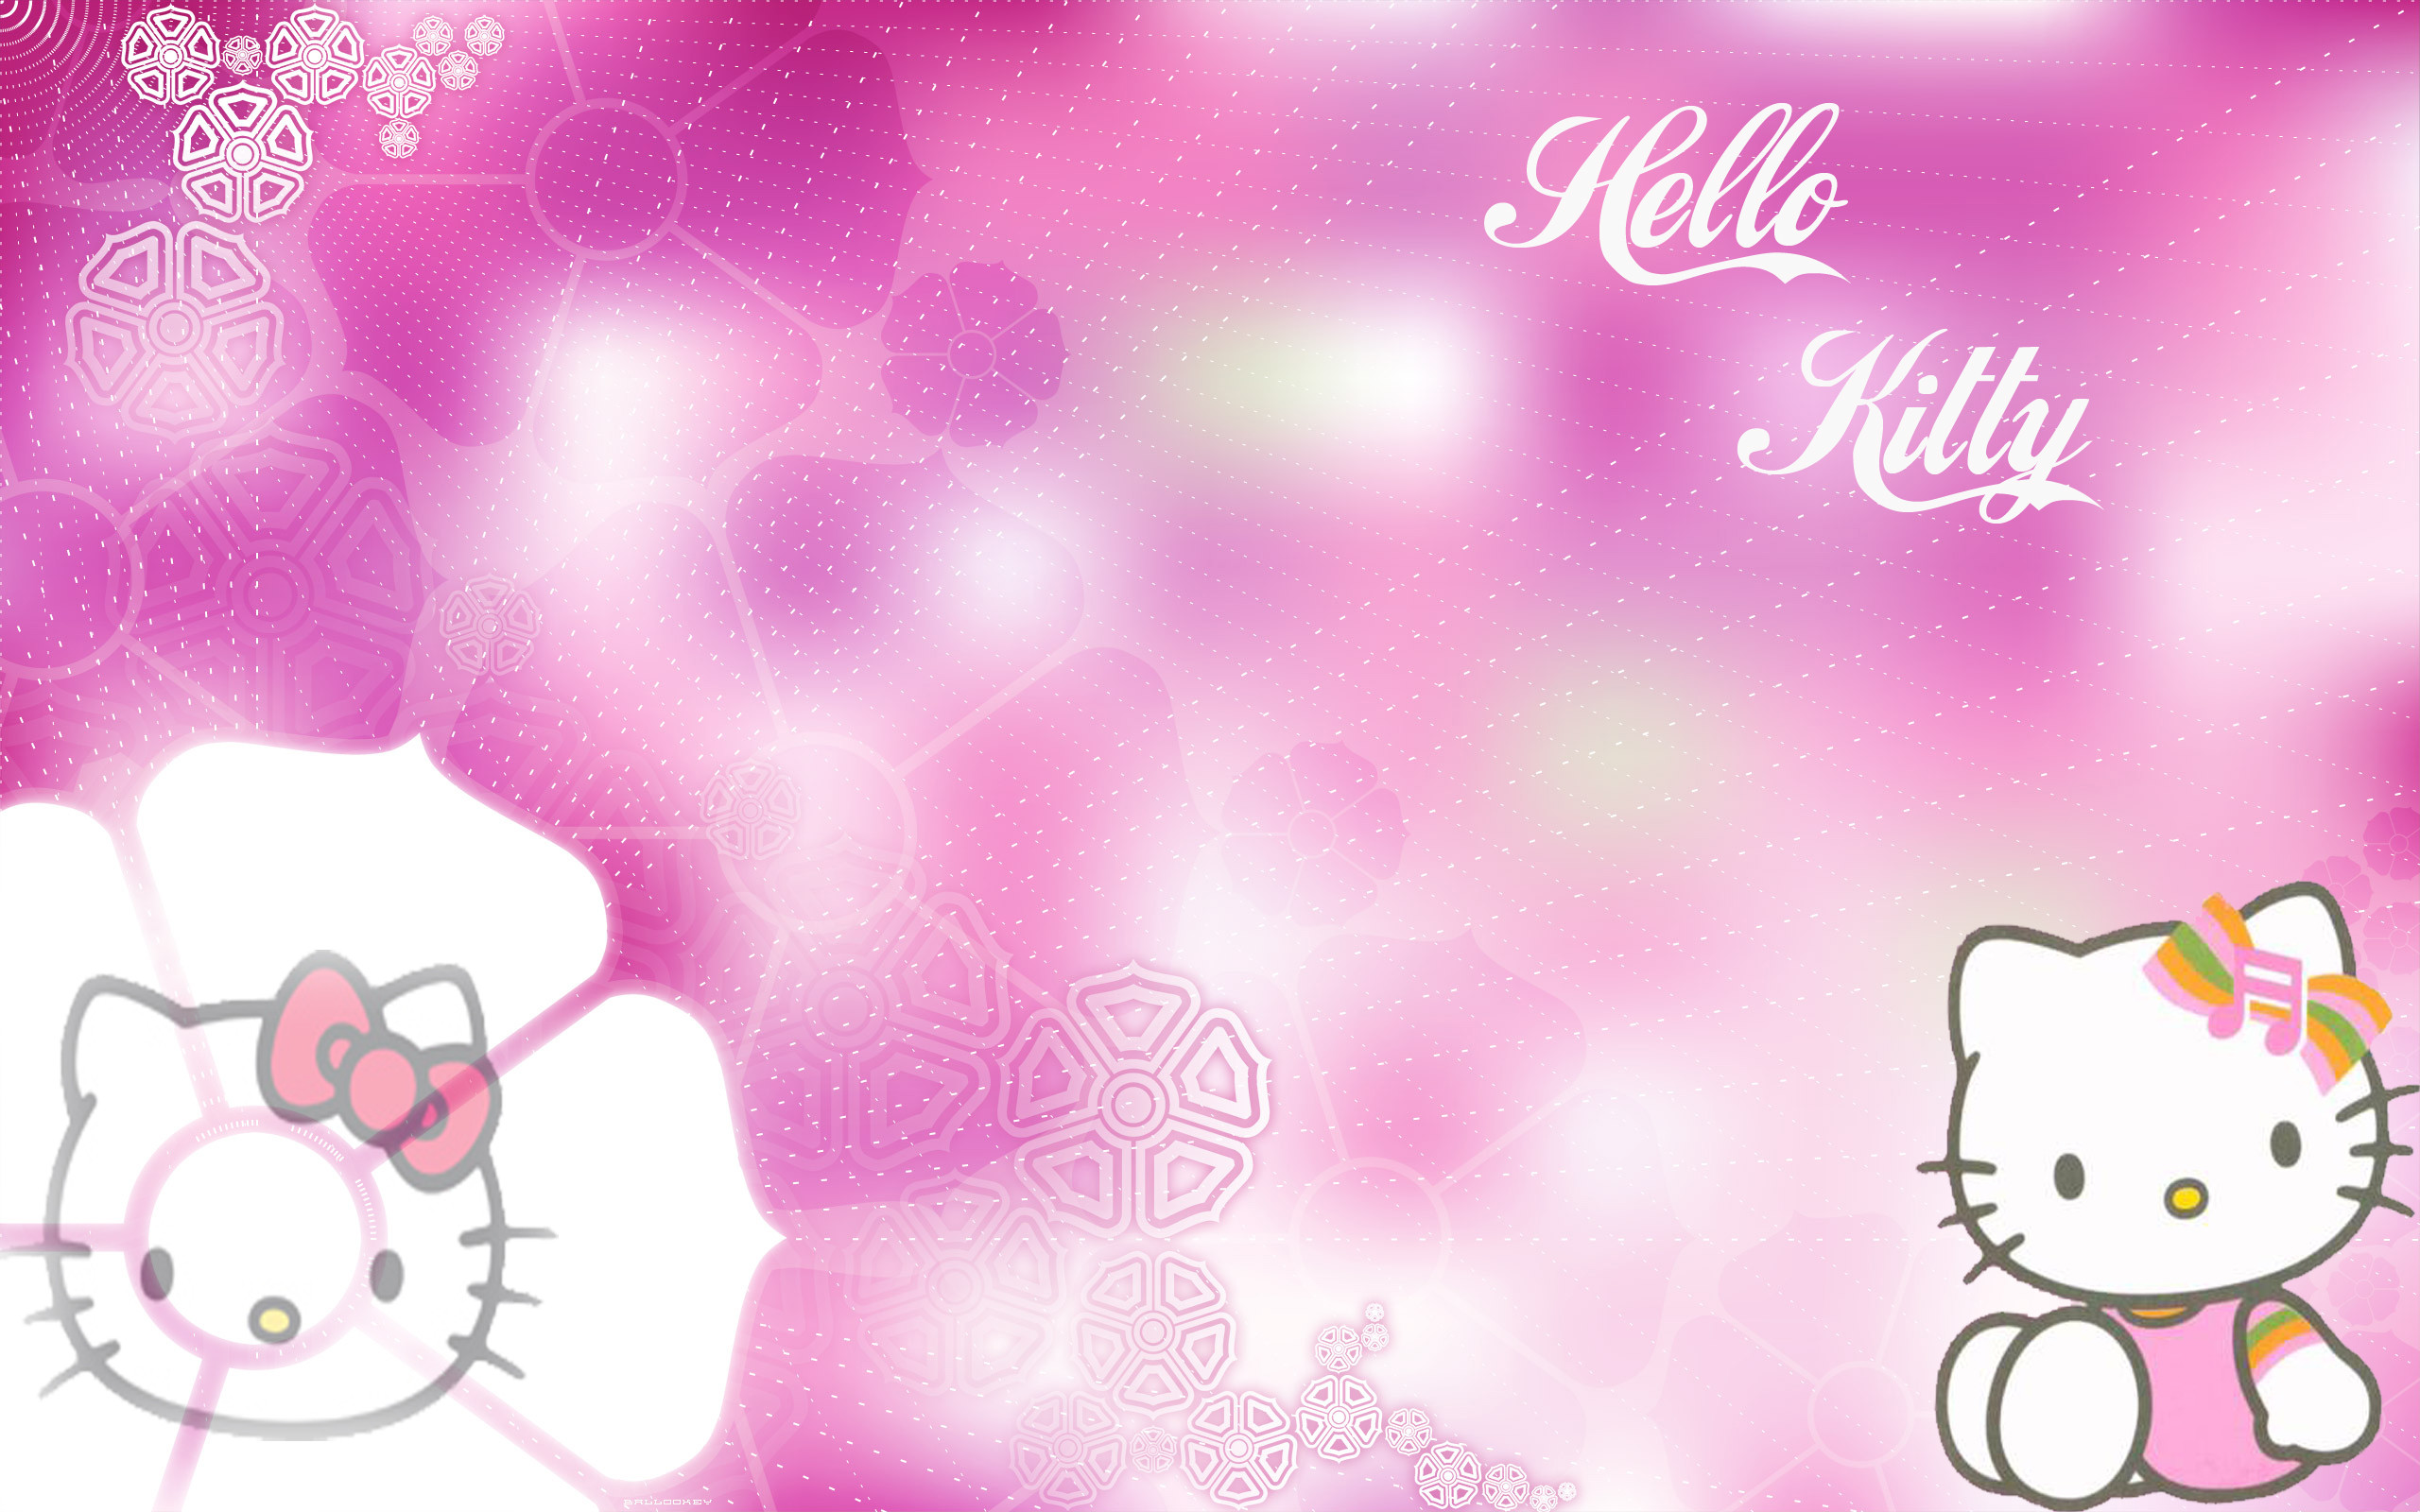 Download Wallpaper Hello Kitty Girly - 537370  Best Photo Reference_238291.jpg